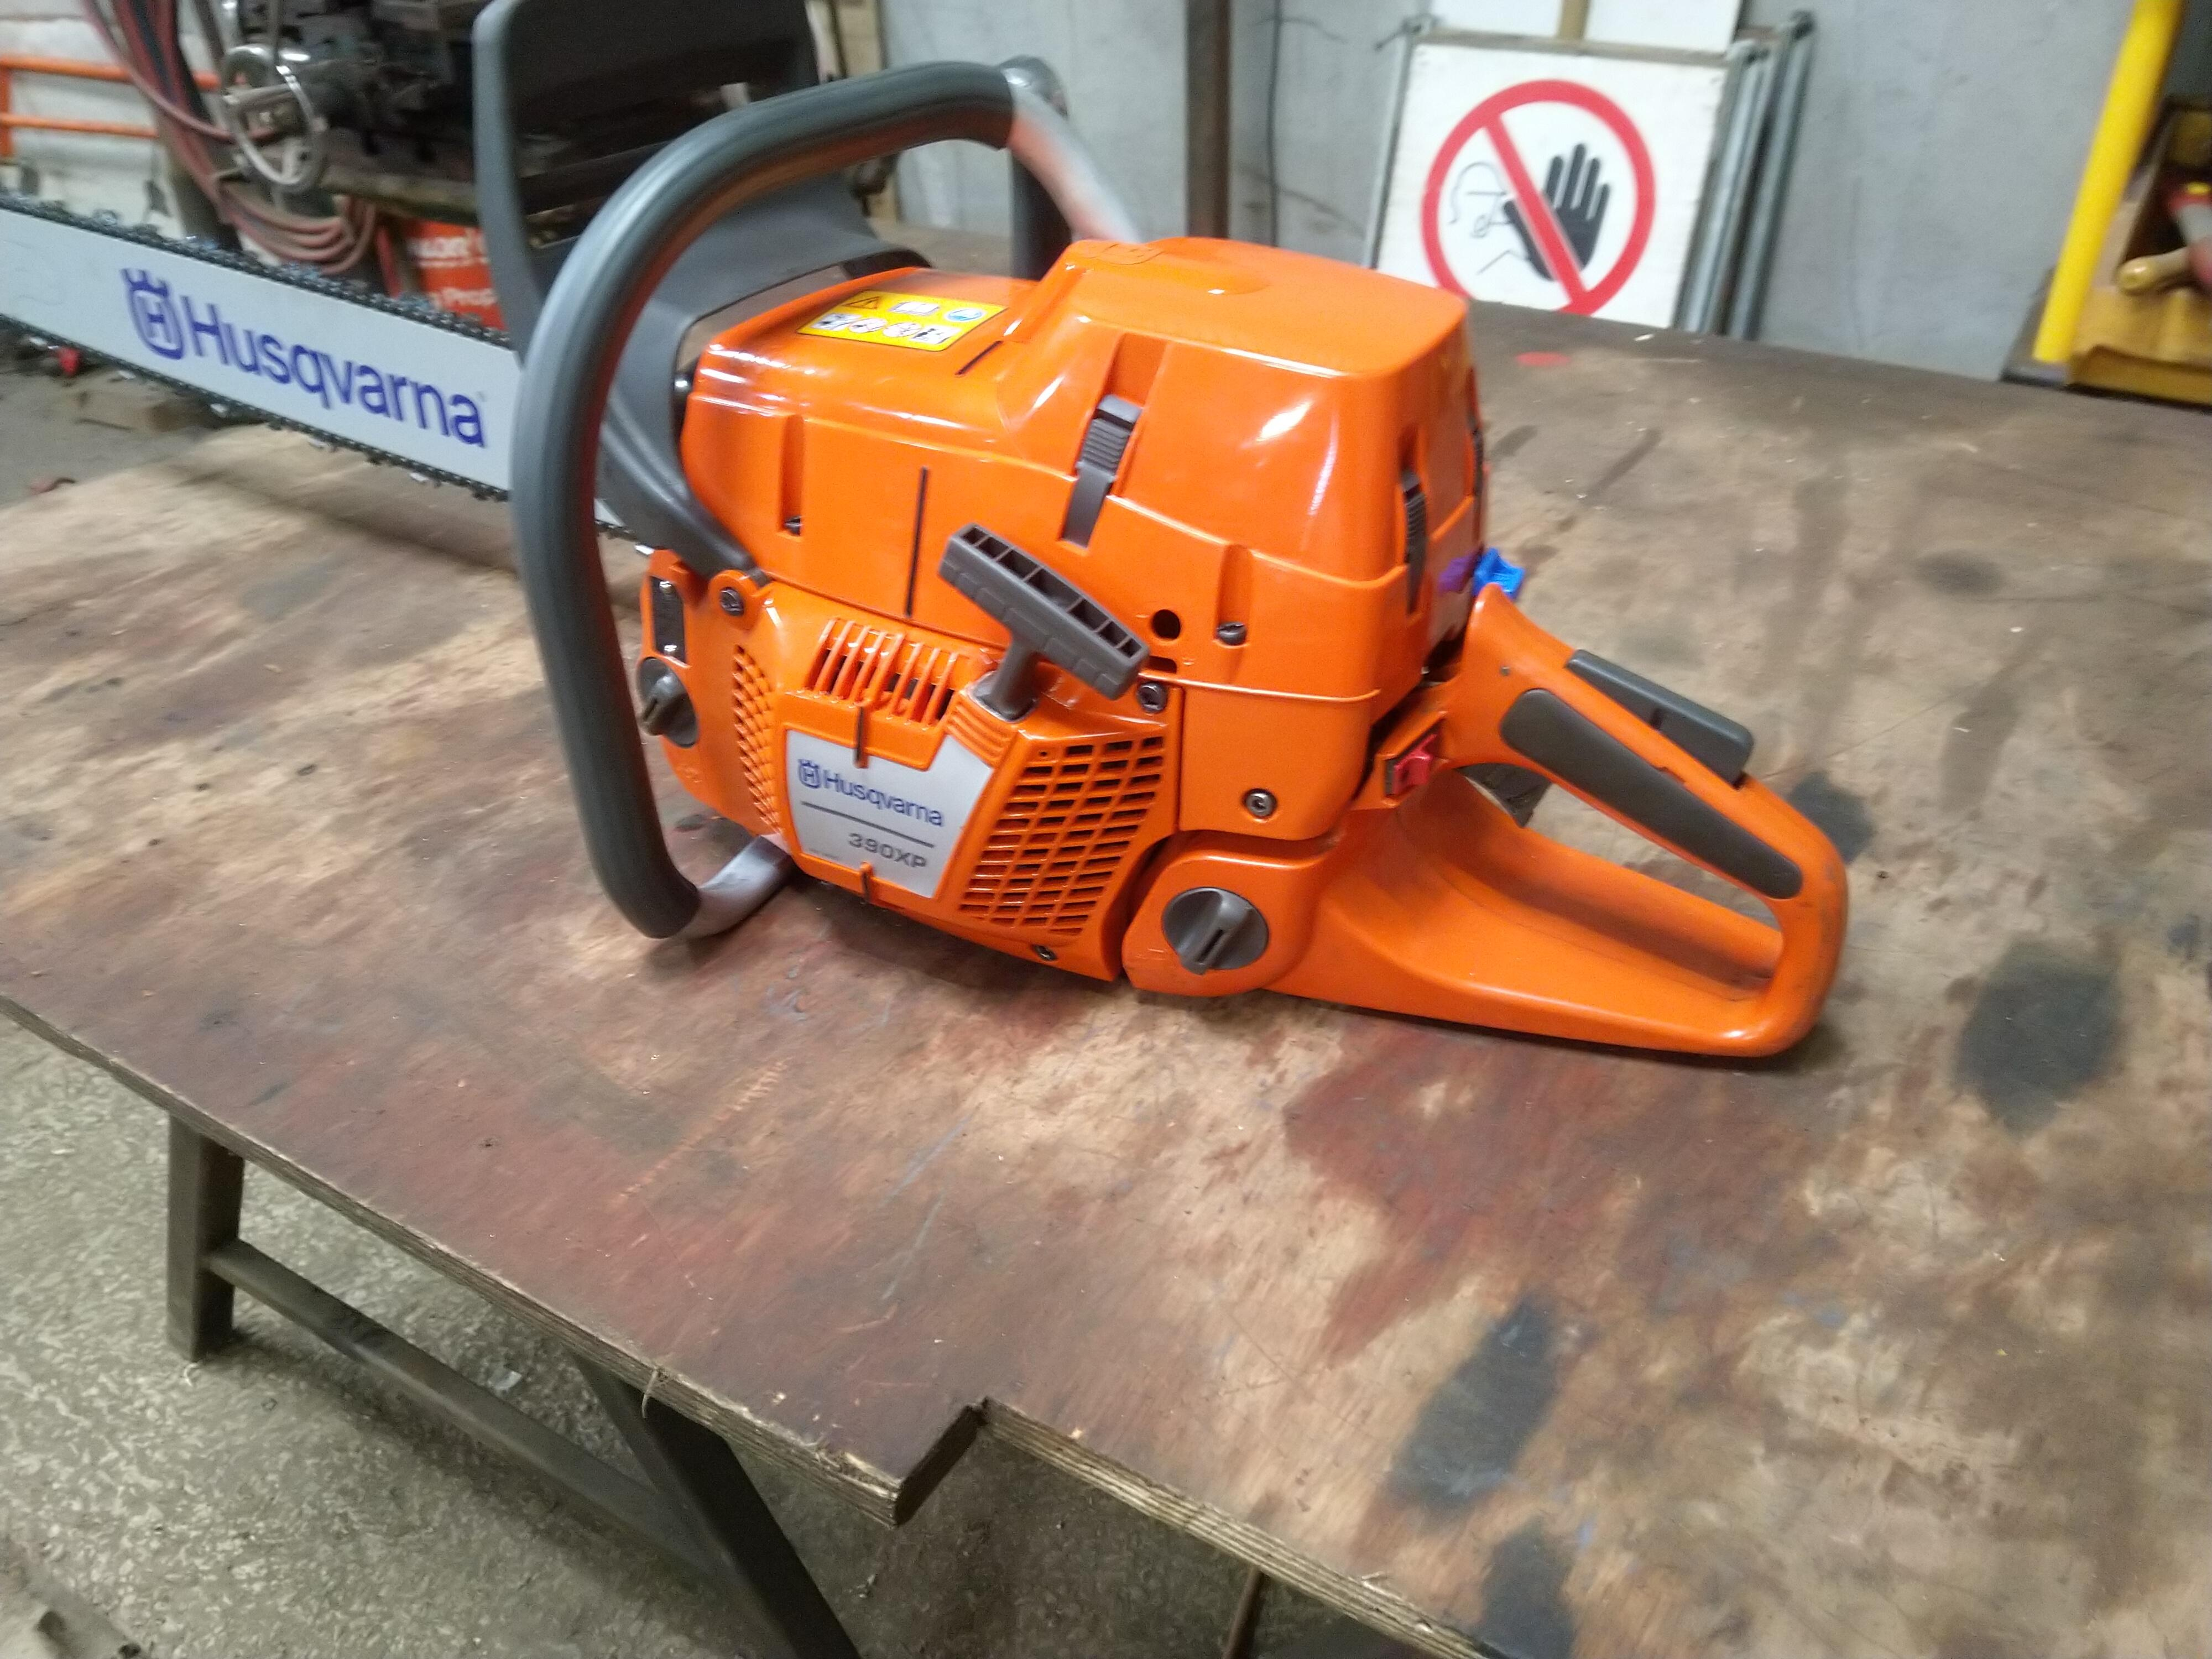 Husqvarna Chainsaws stolen from me